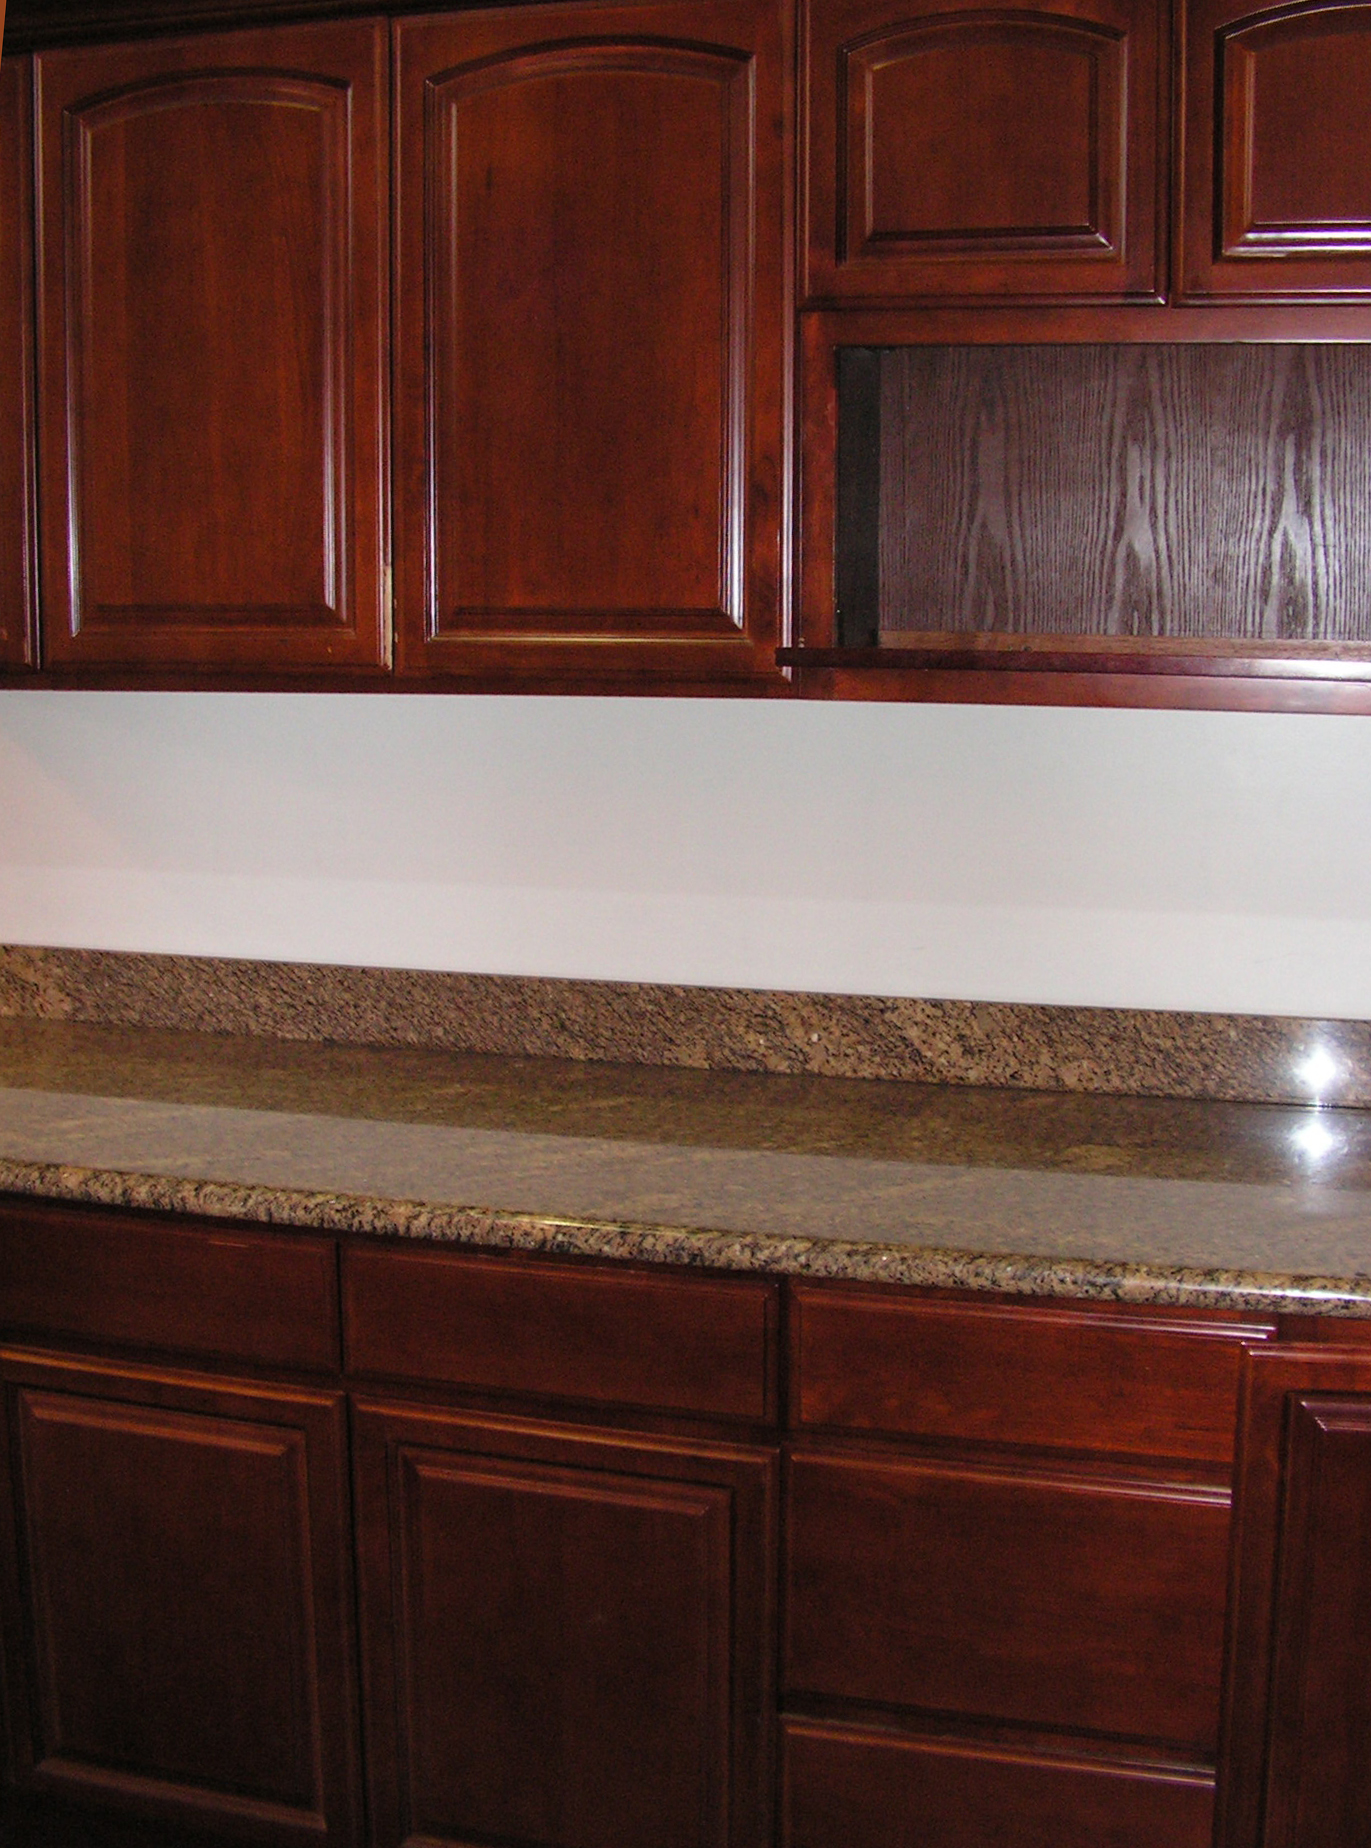 allcabinets oak kitchen cabinets Oak Cherry Wholesale Kitchen Cabinets Cherry Cherry Stained